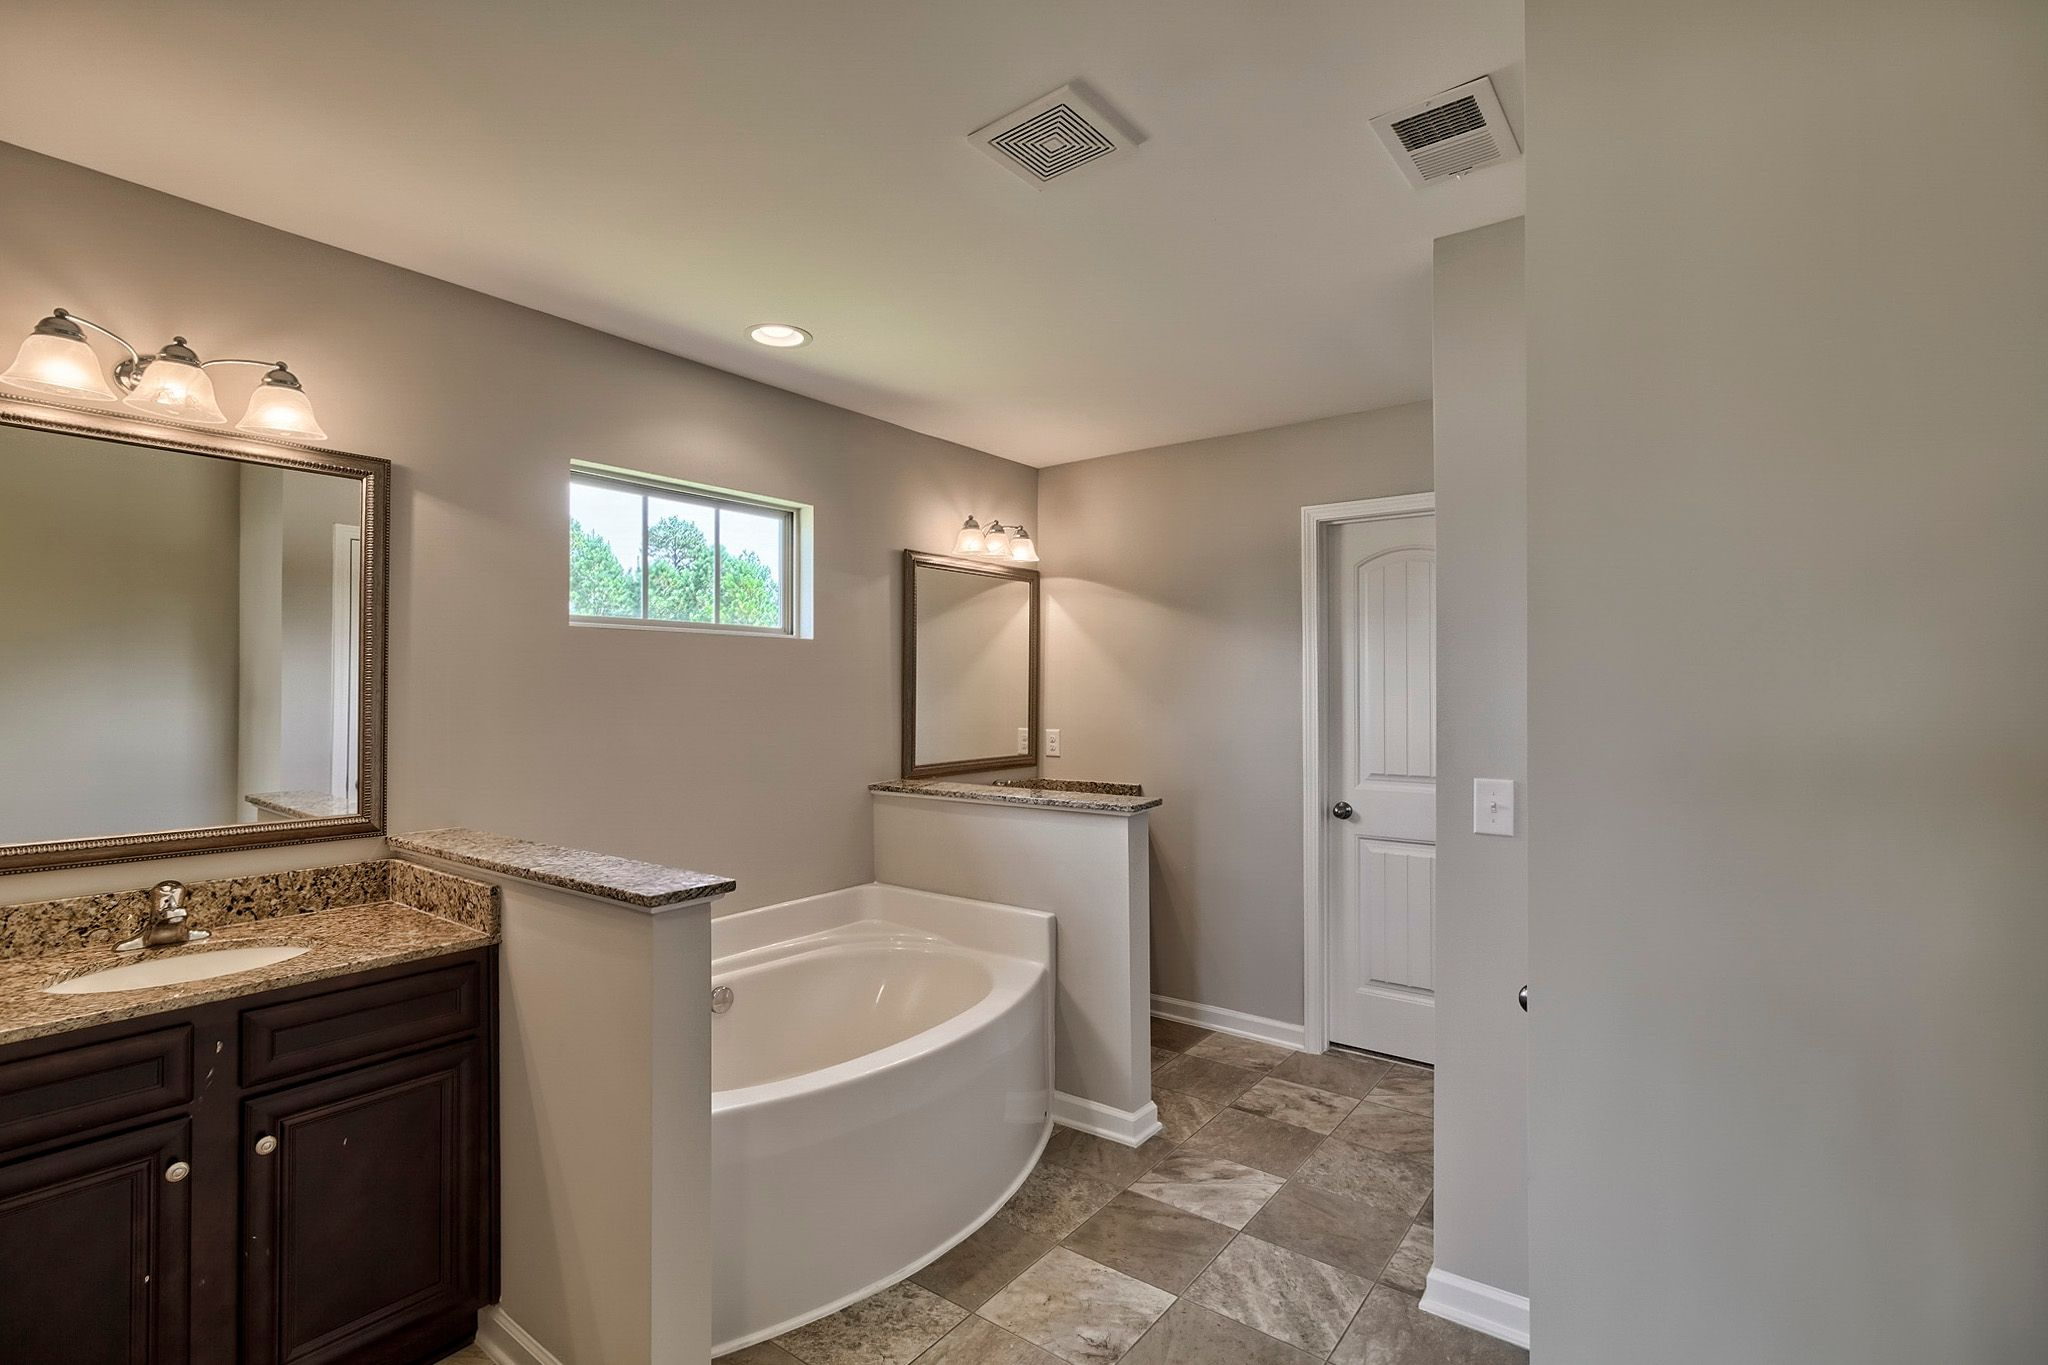 Bathroom featured in the Porter F By Great Southern Homes in Sumter, SC